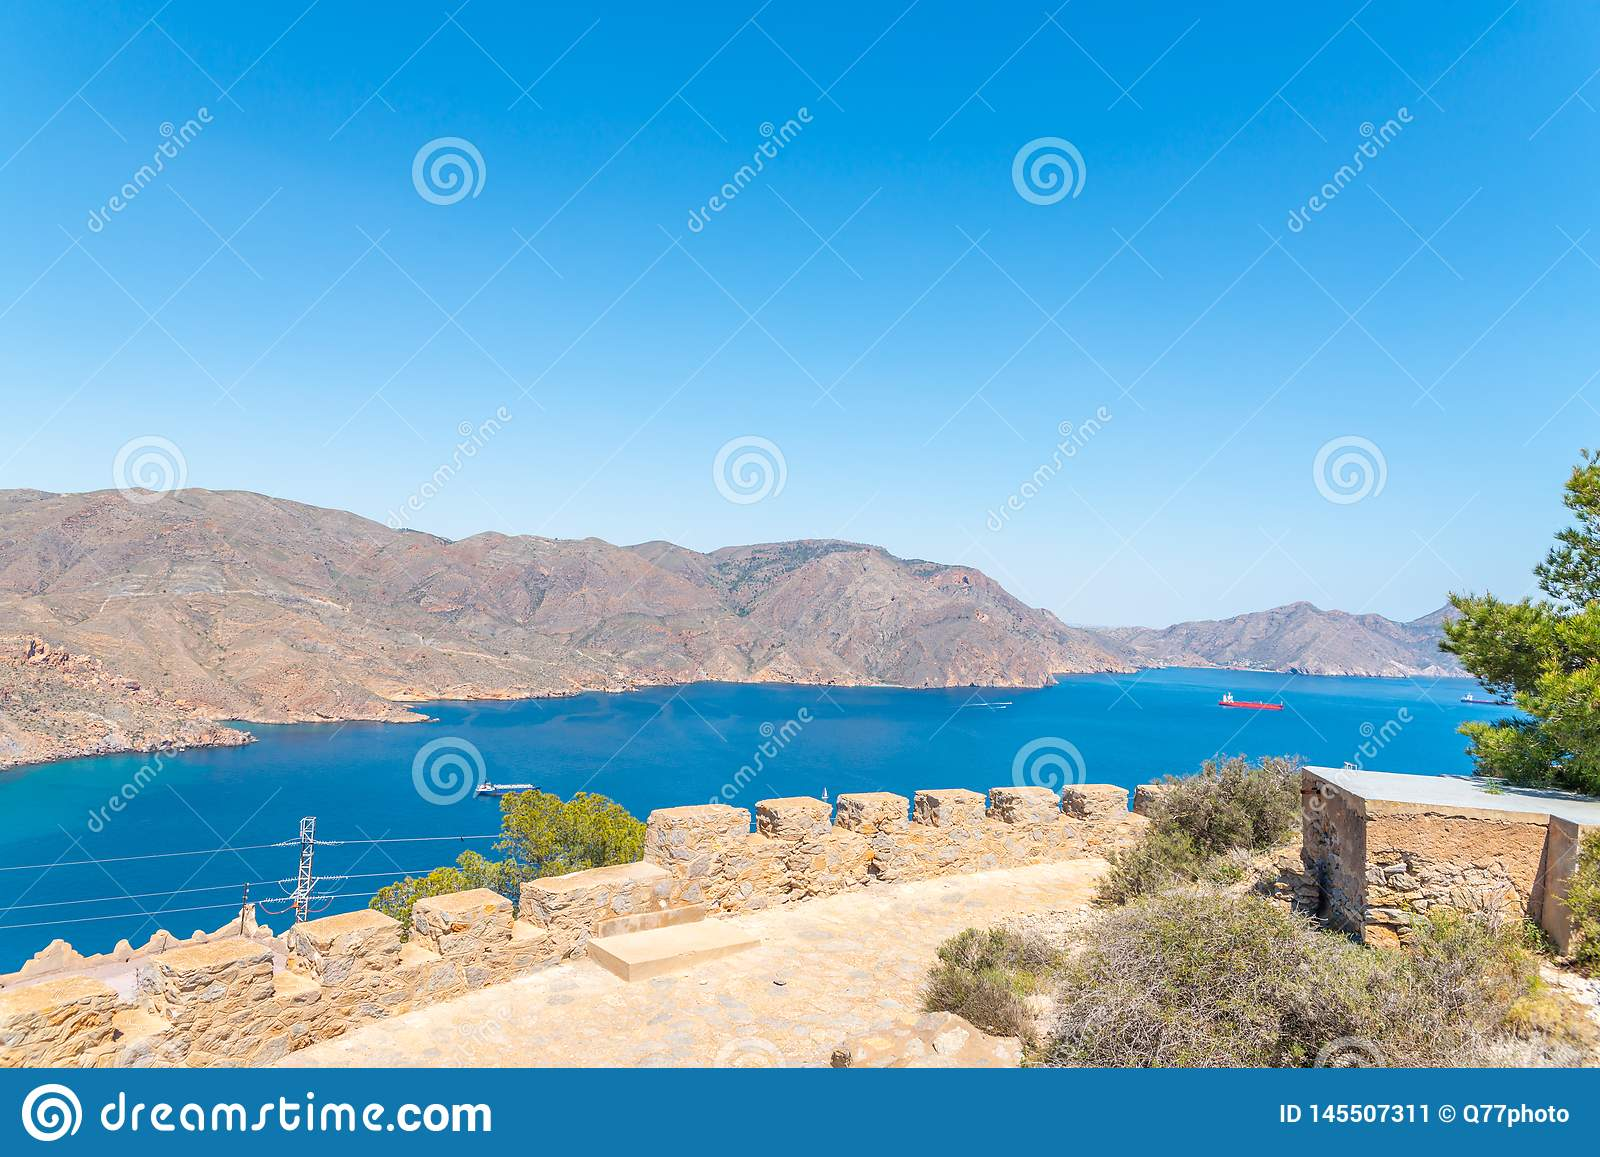 BATTERY CASTILLITOS, SPAIN - APRIL 13, 2019 Abandoned military constructions located in the hills near the bay of Cartagena